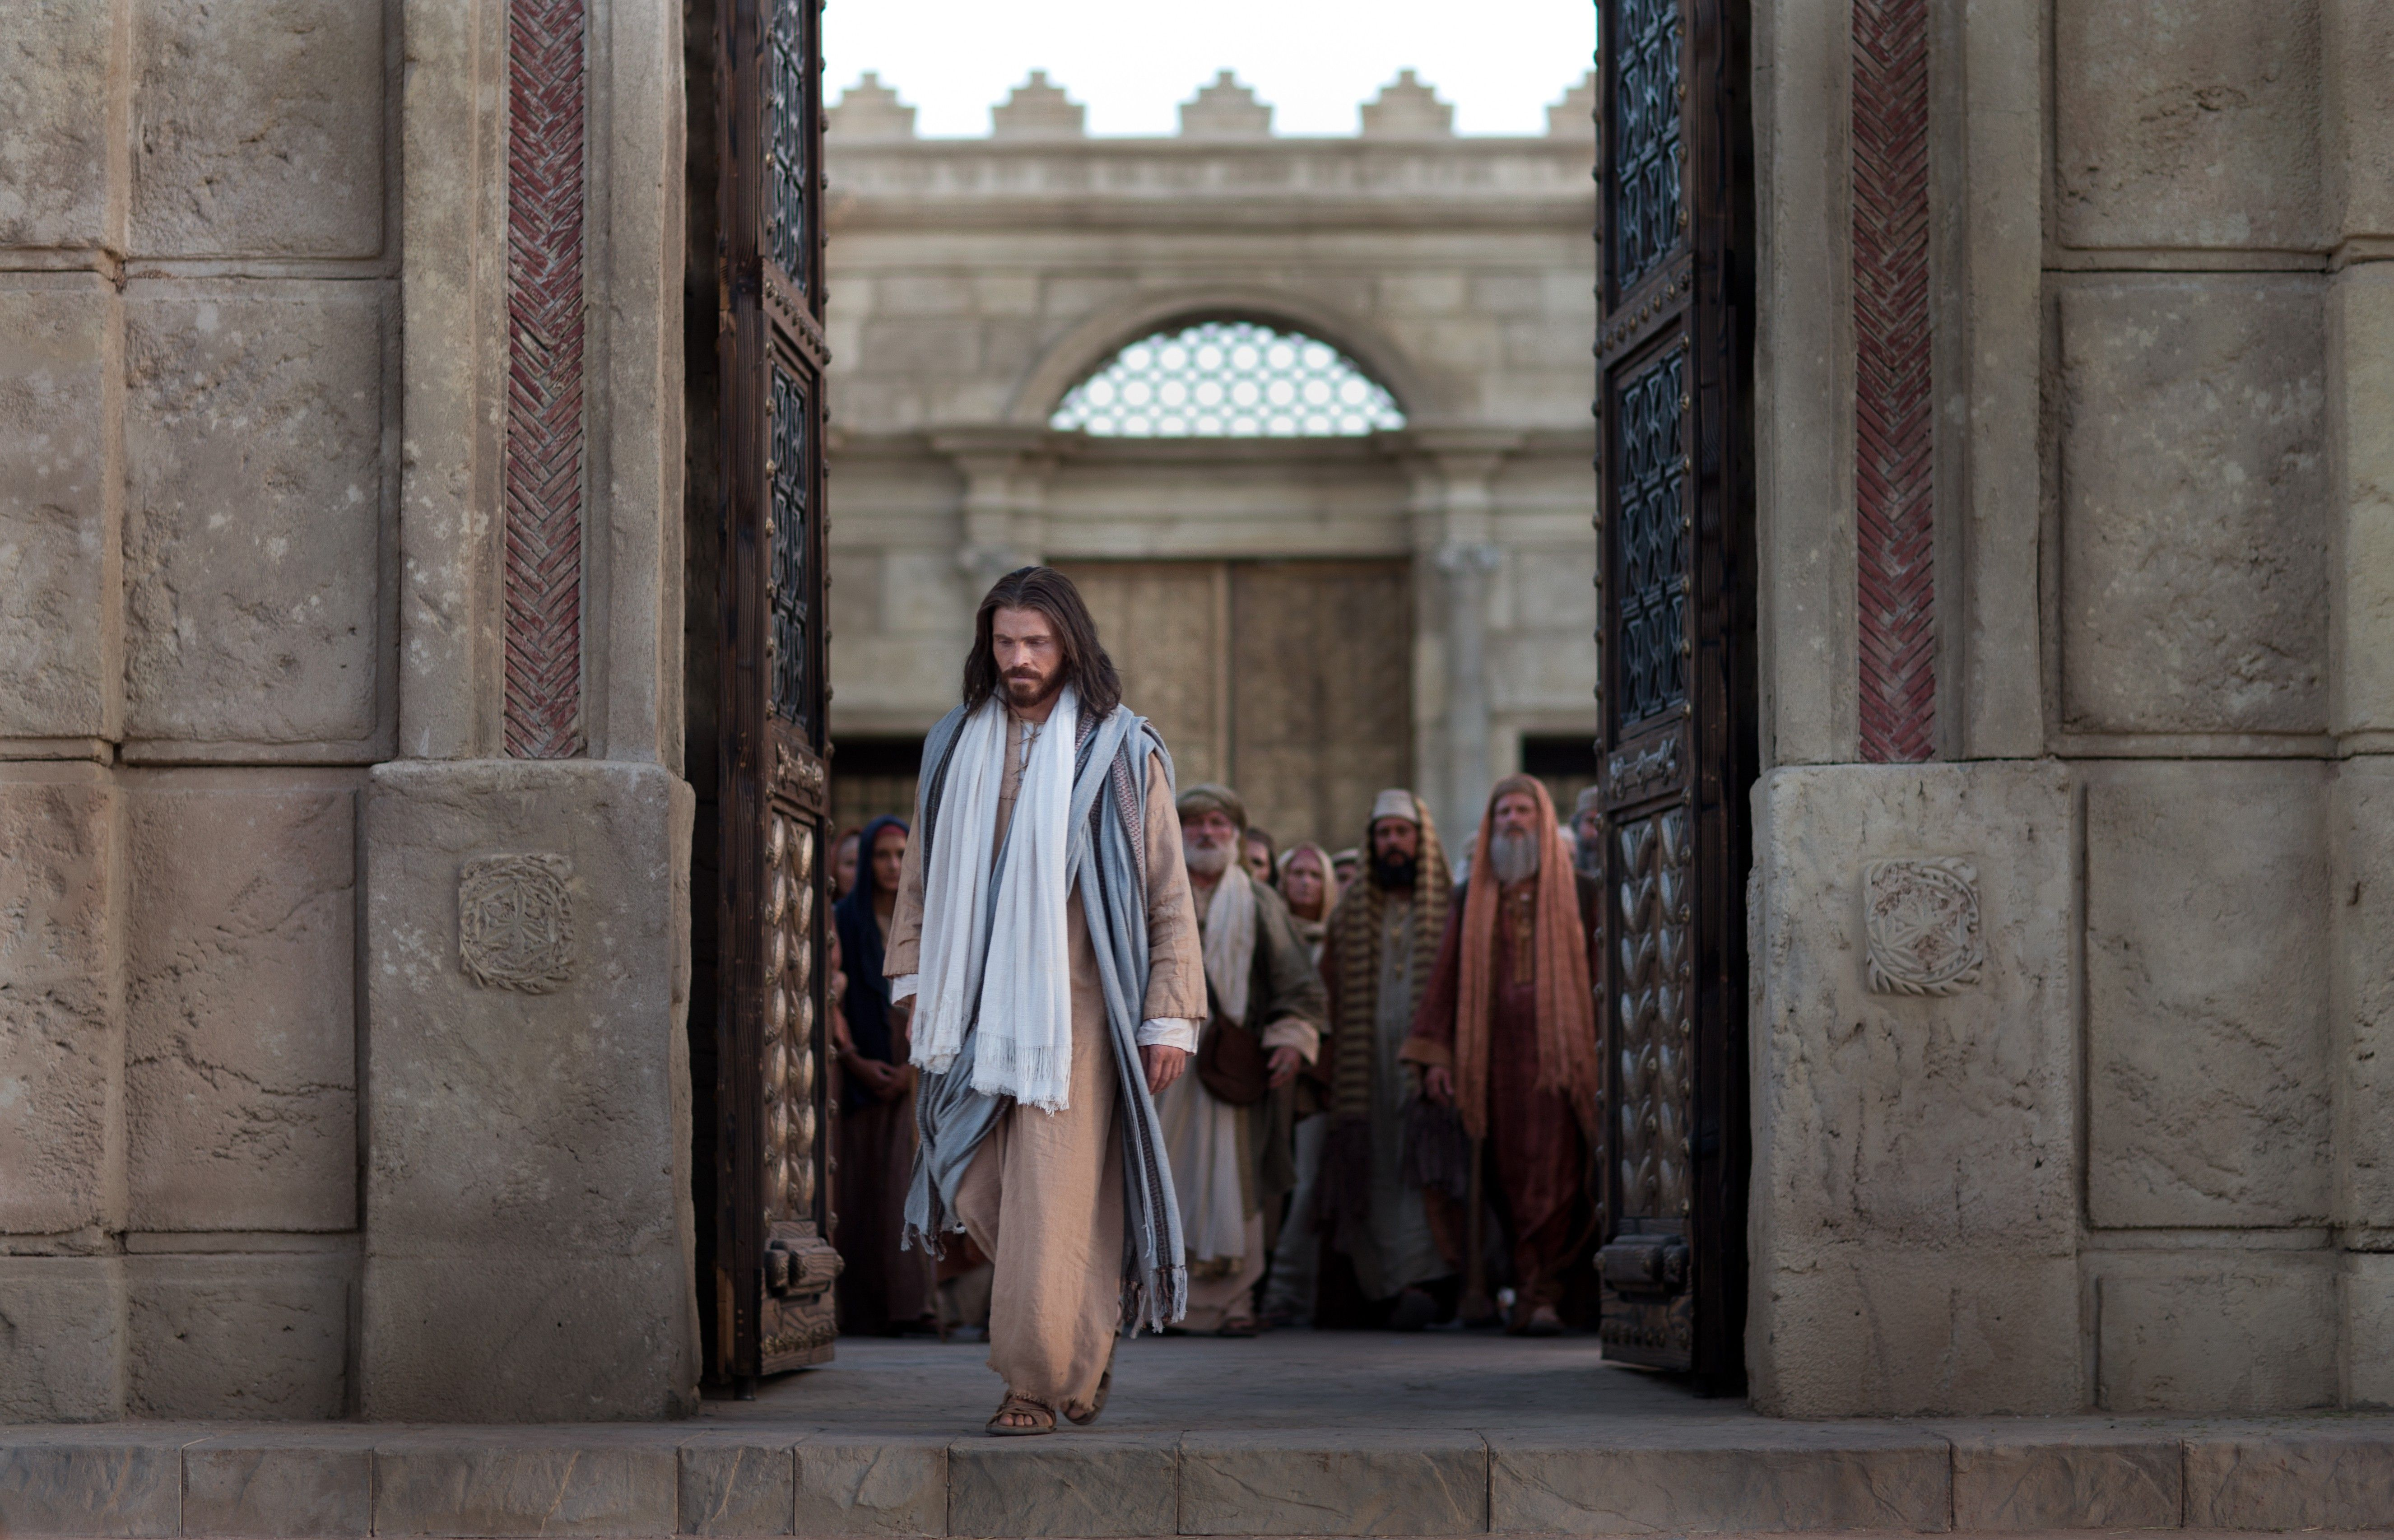 Jesus exits the temple as Pharisees question Him.